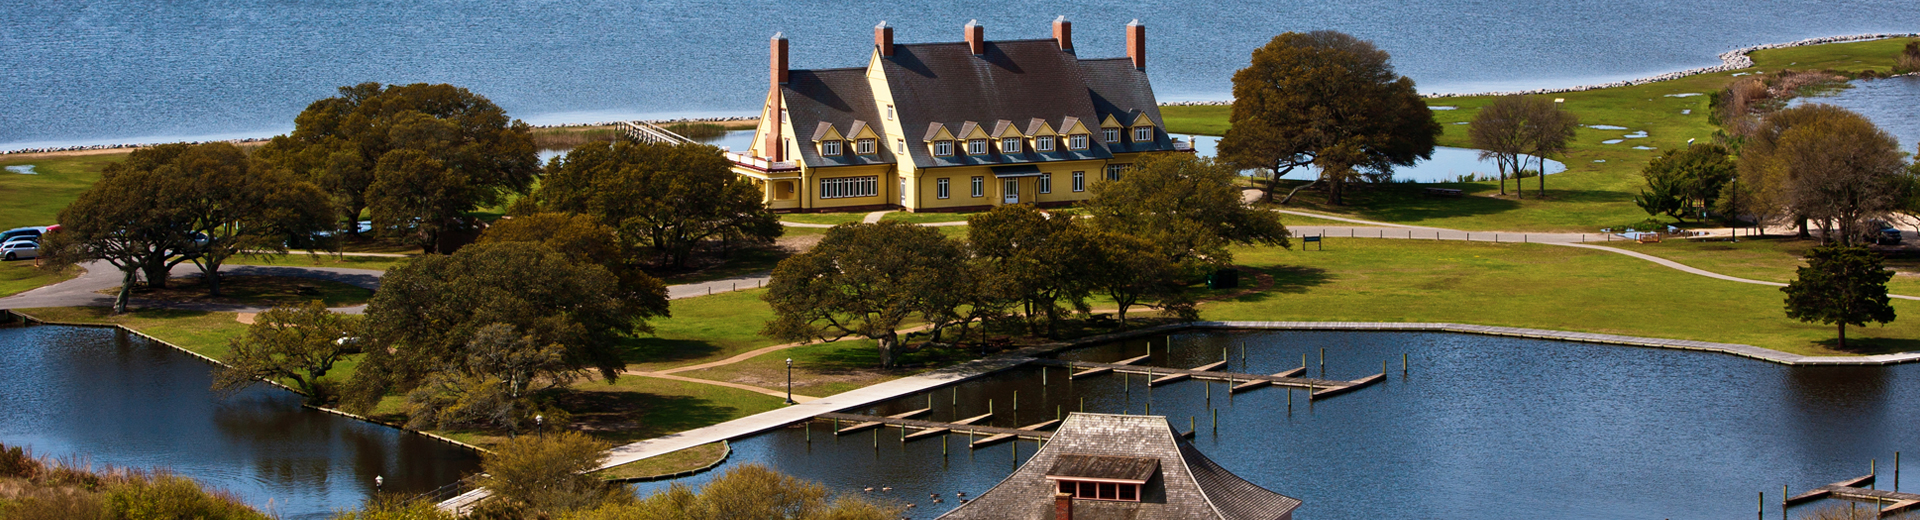 historic whalehead club in currituck county